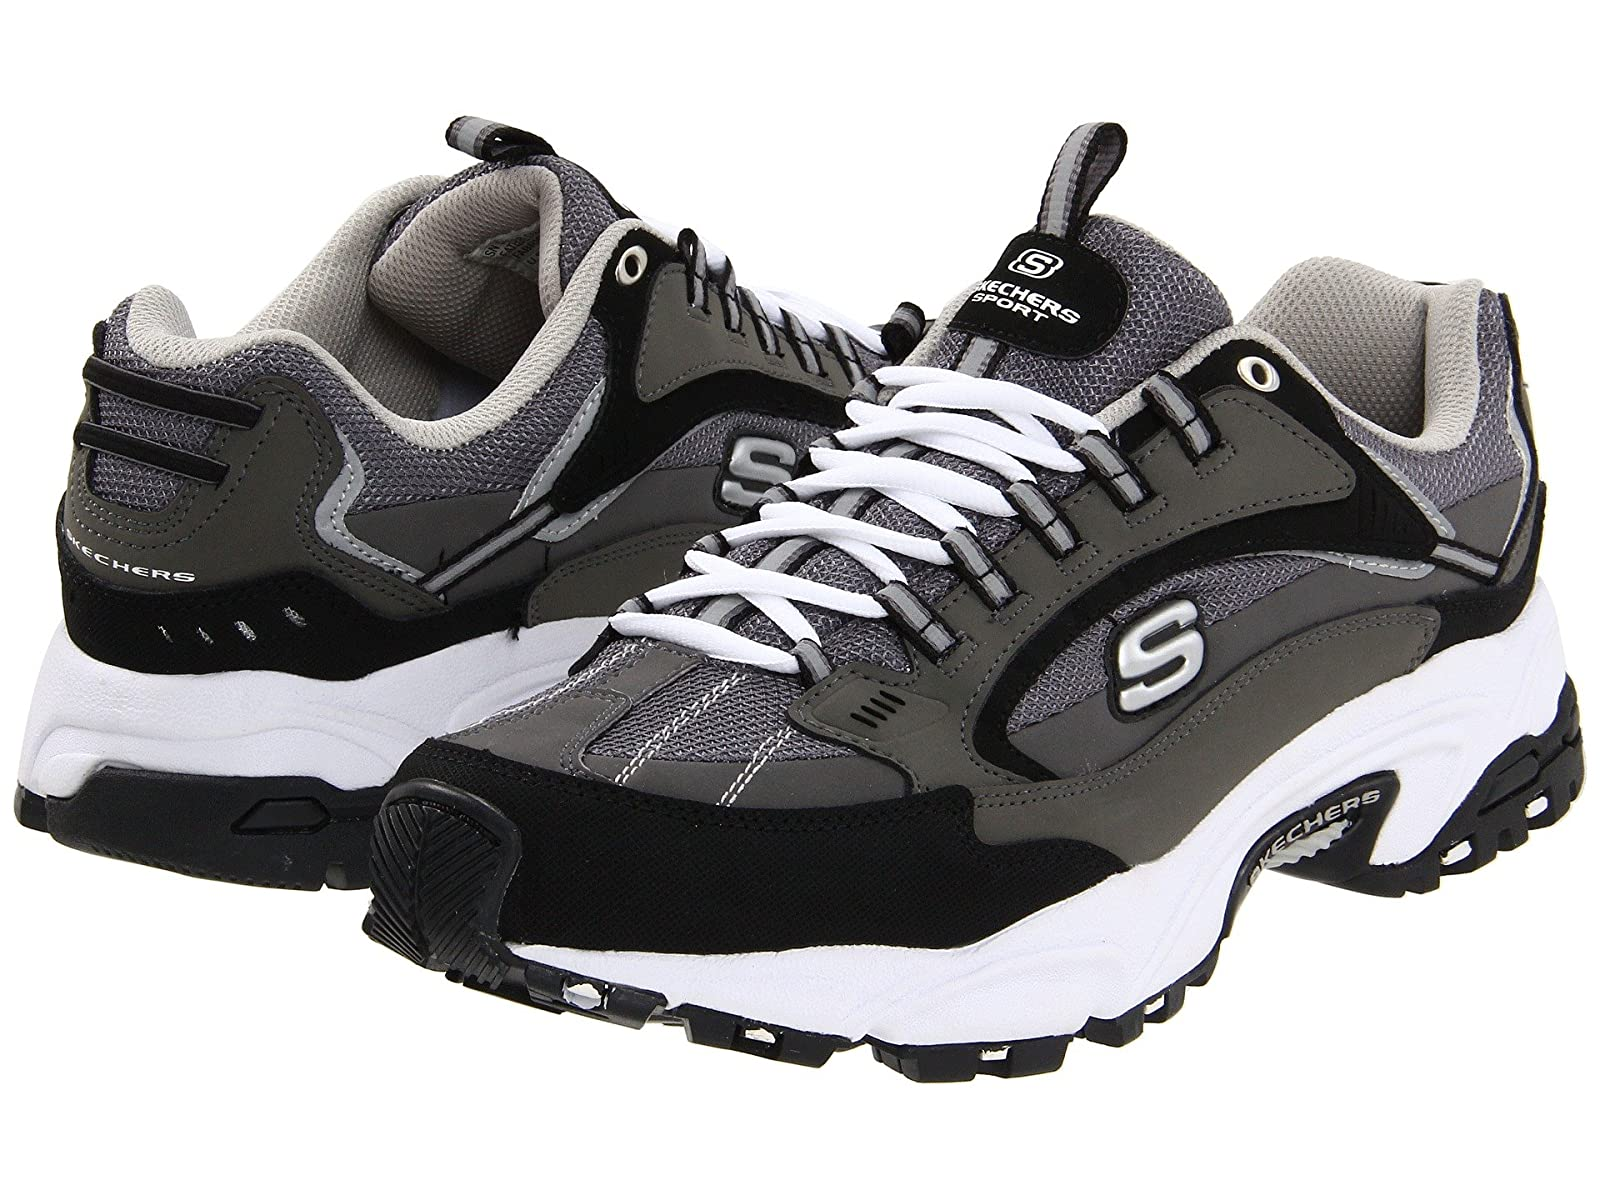 SKECHERS Stamina - NuovoCheap and distinctive eye-catching shoes